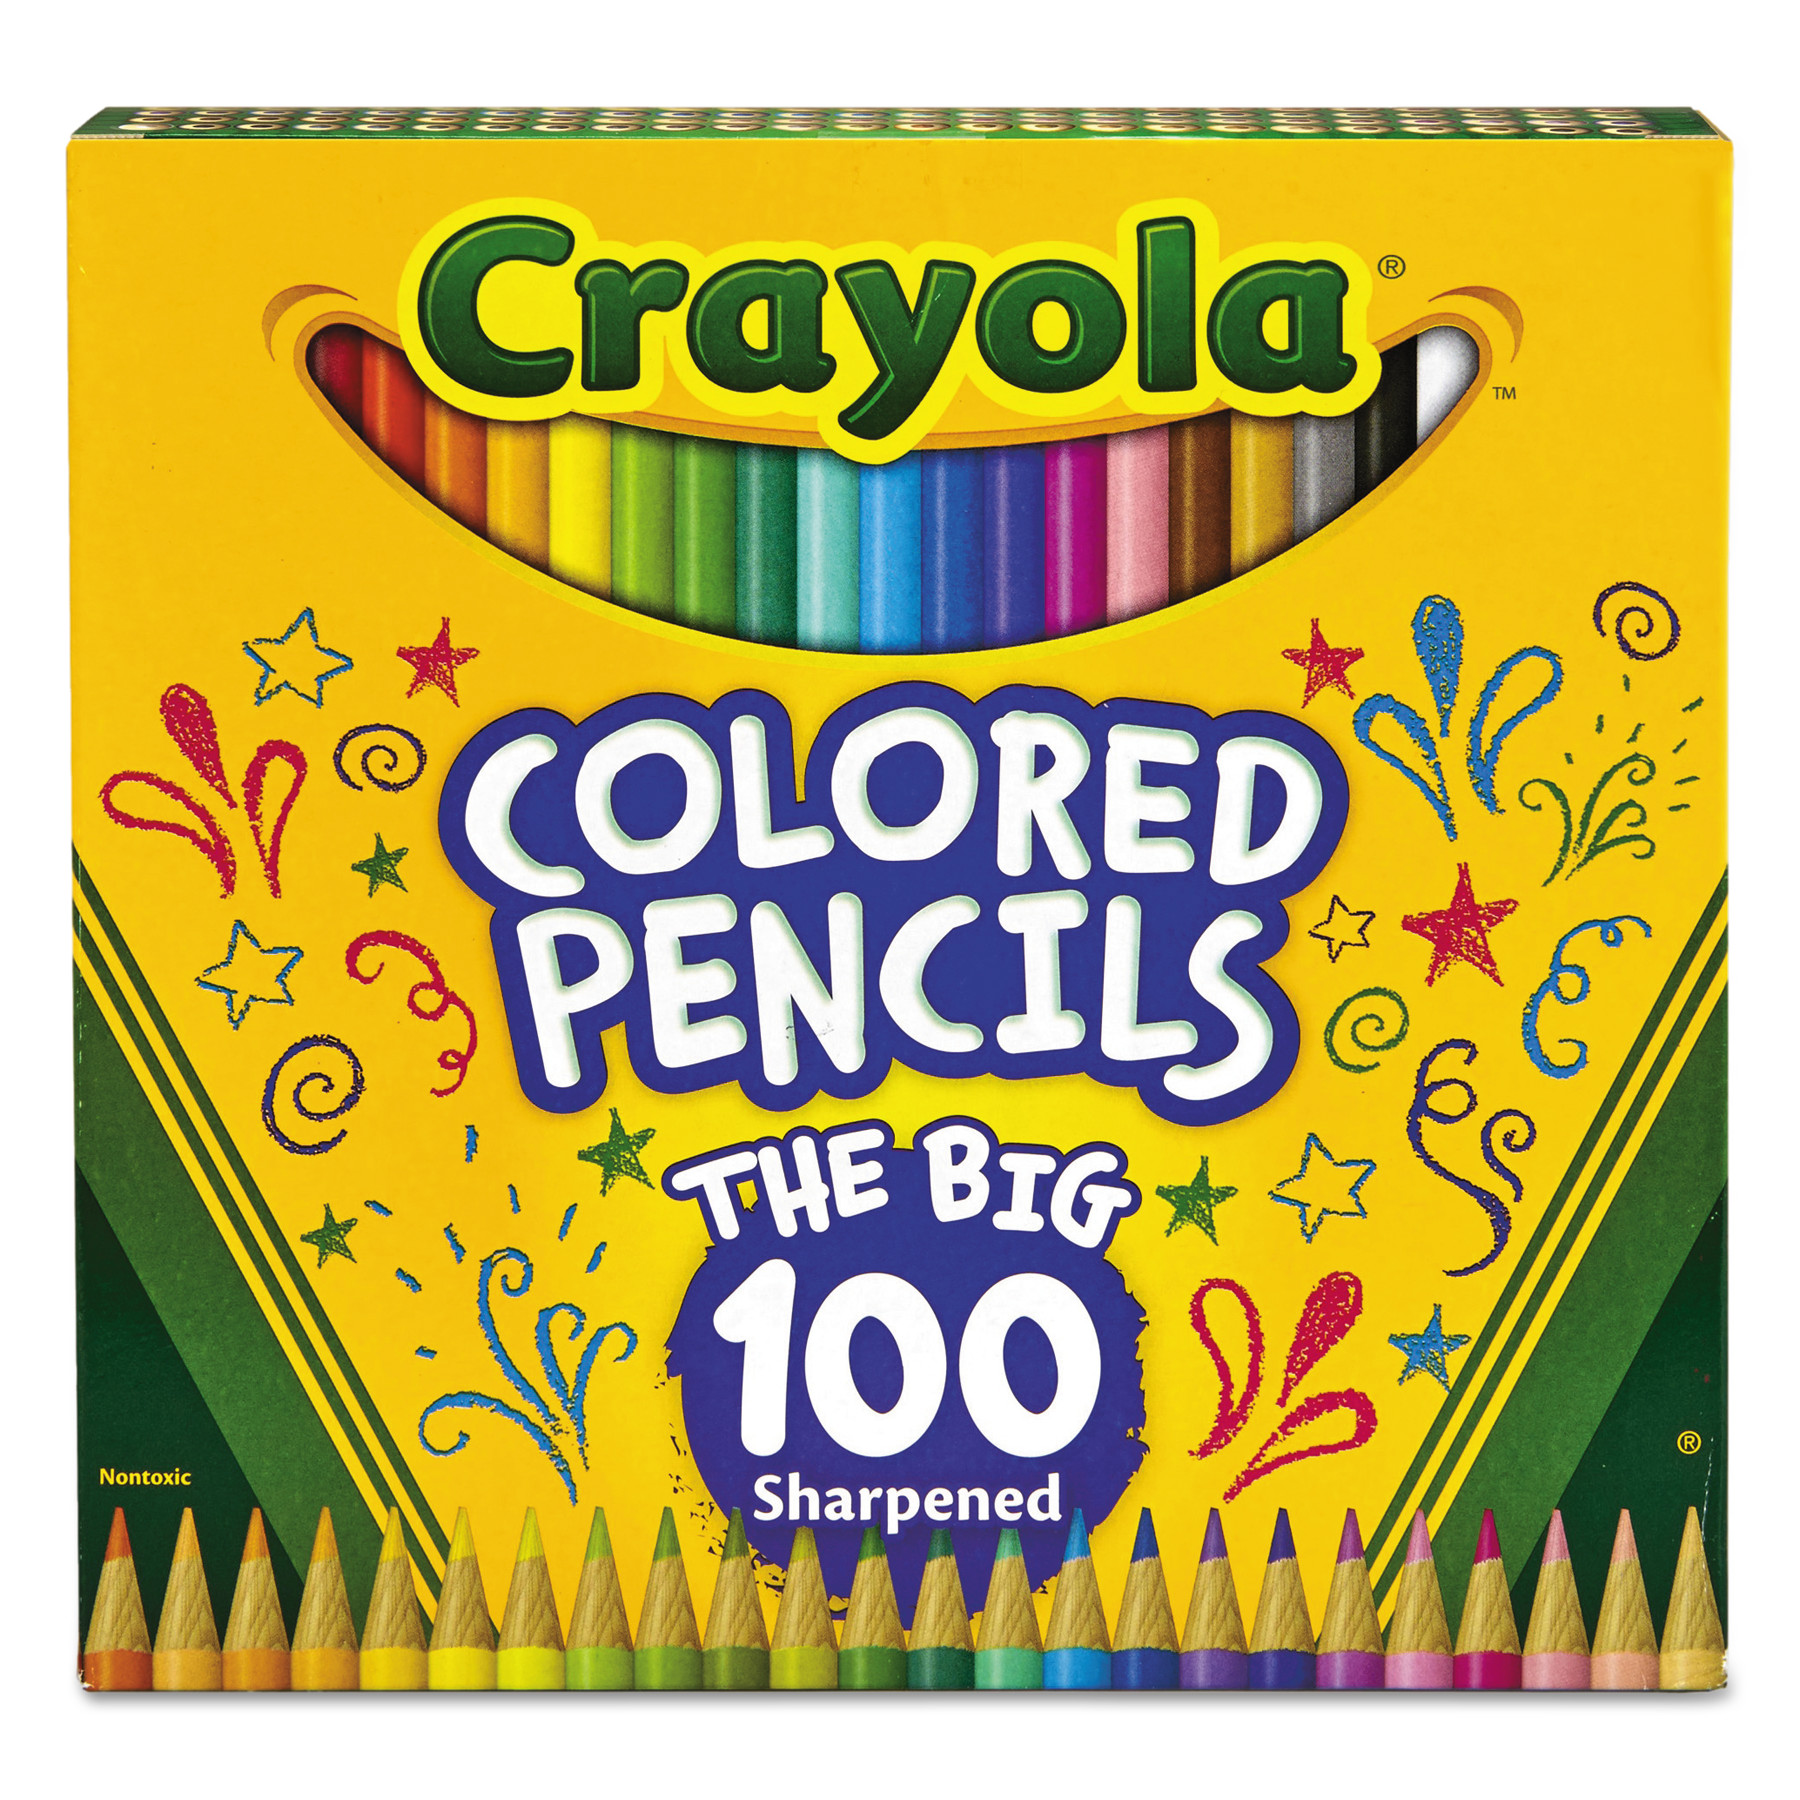 Crayola Long Barrel Colored Woodcase Pencils, 3.3 mm, 100 Assorted Colors/Set